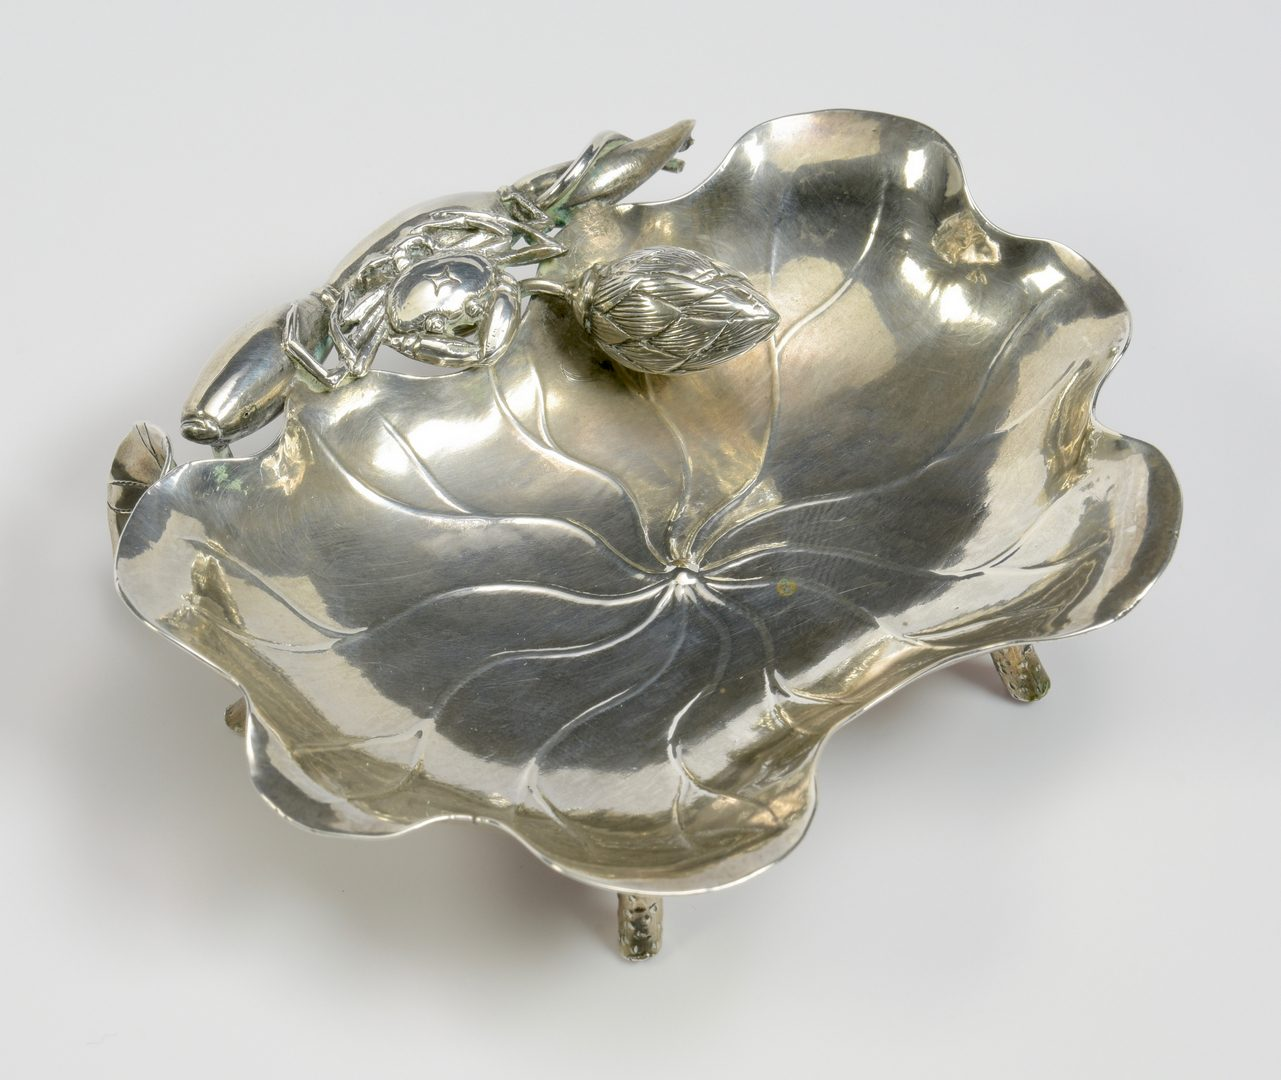 Lot 351: Chinese silver crab dish